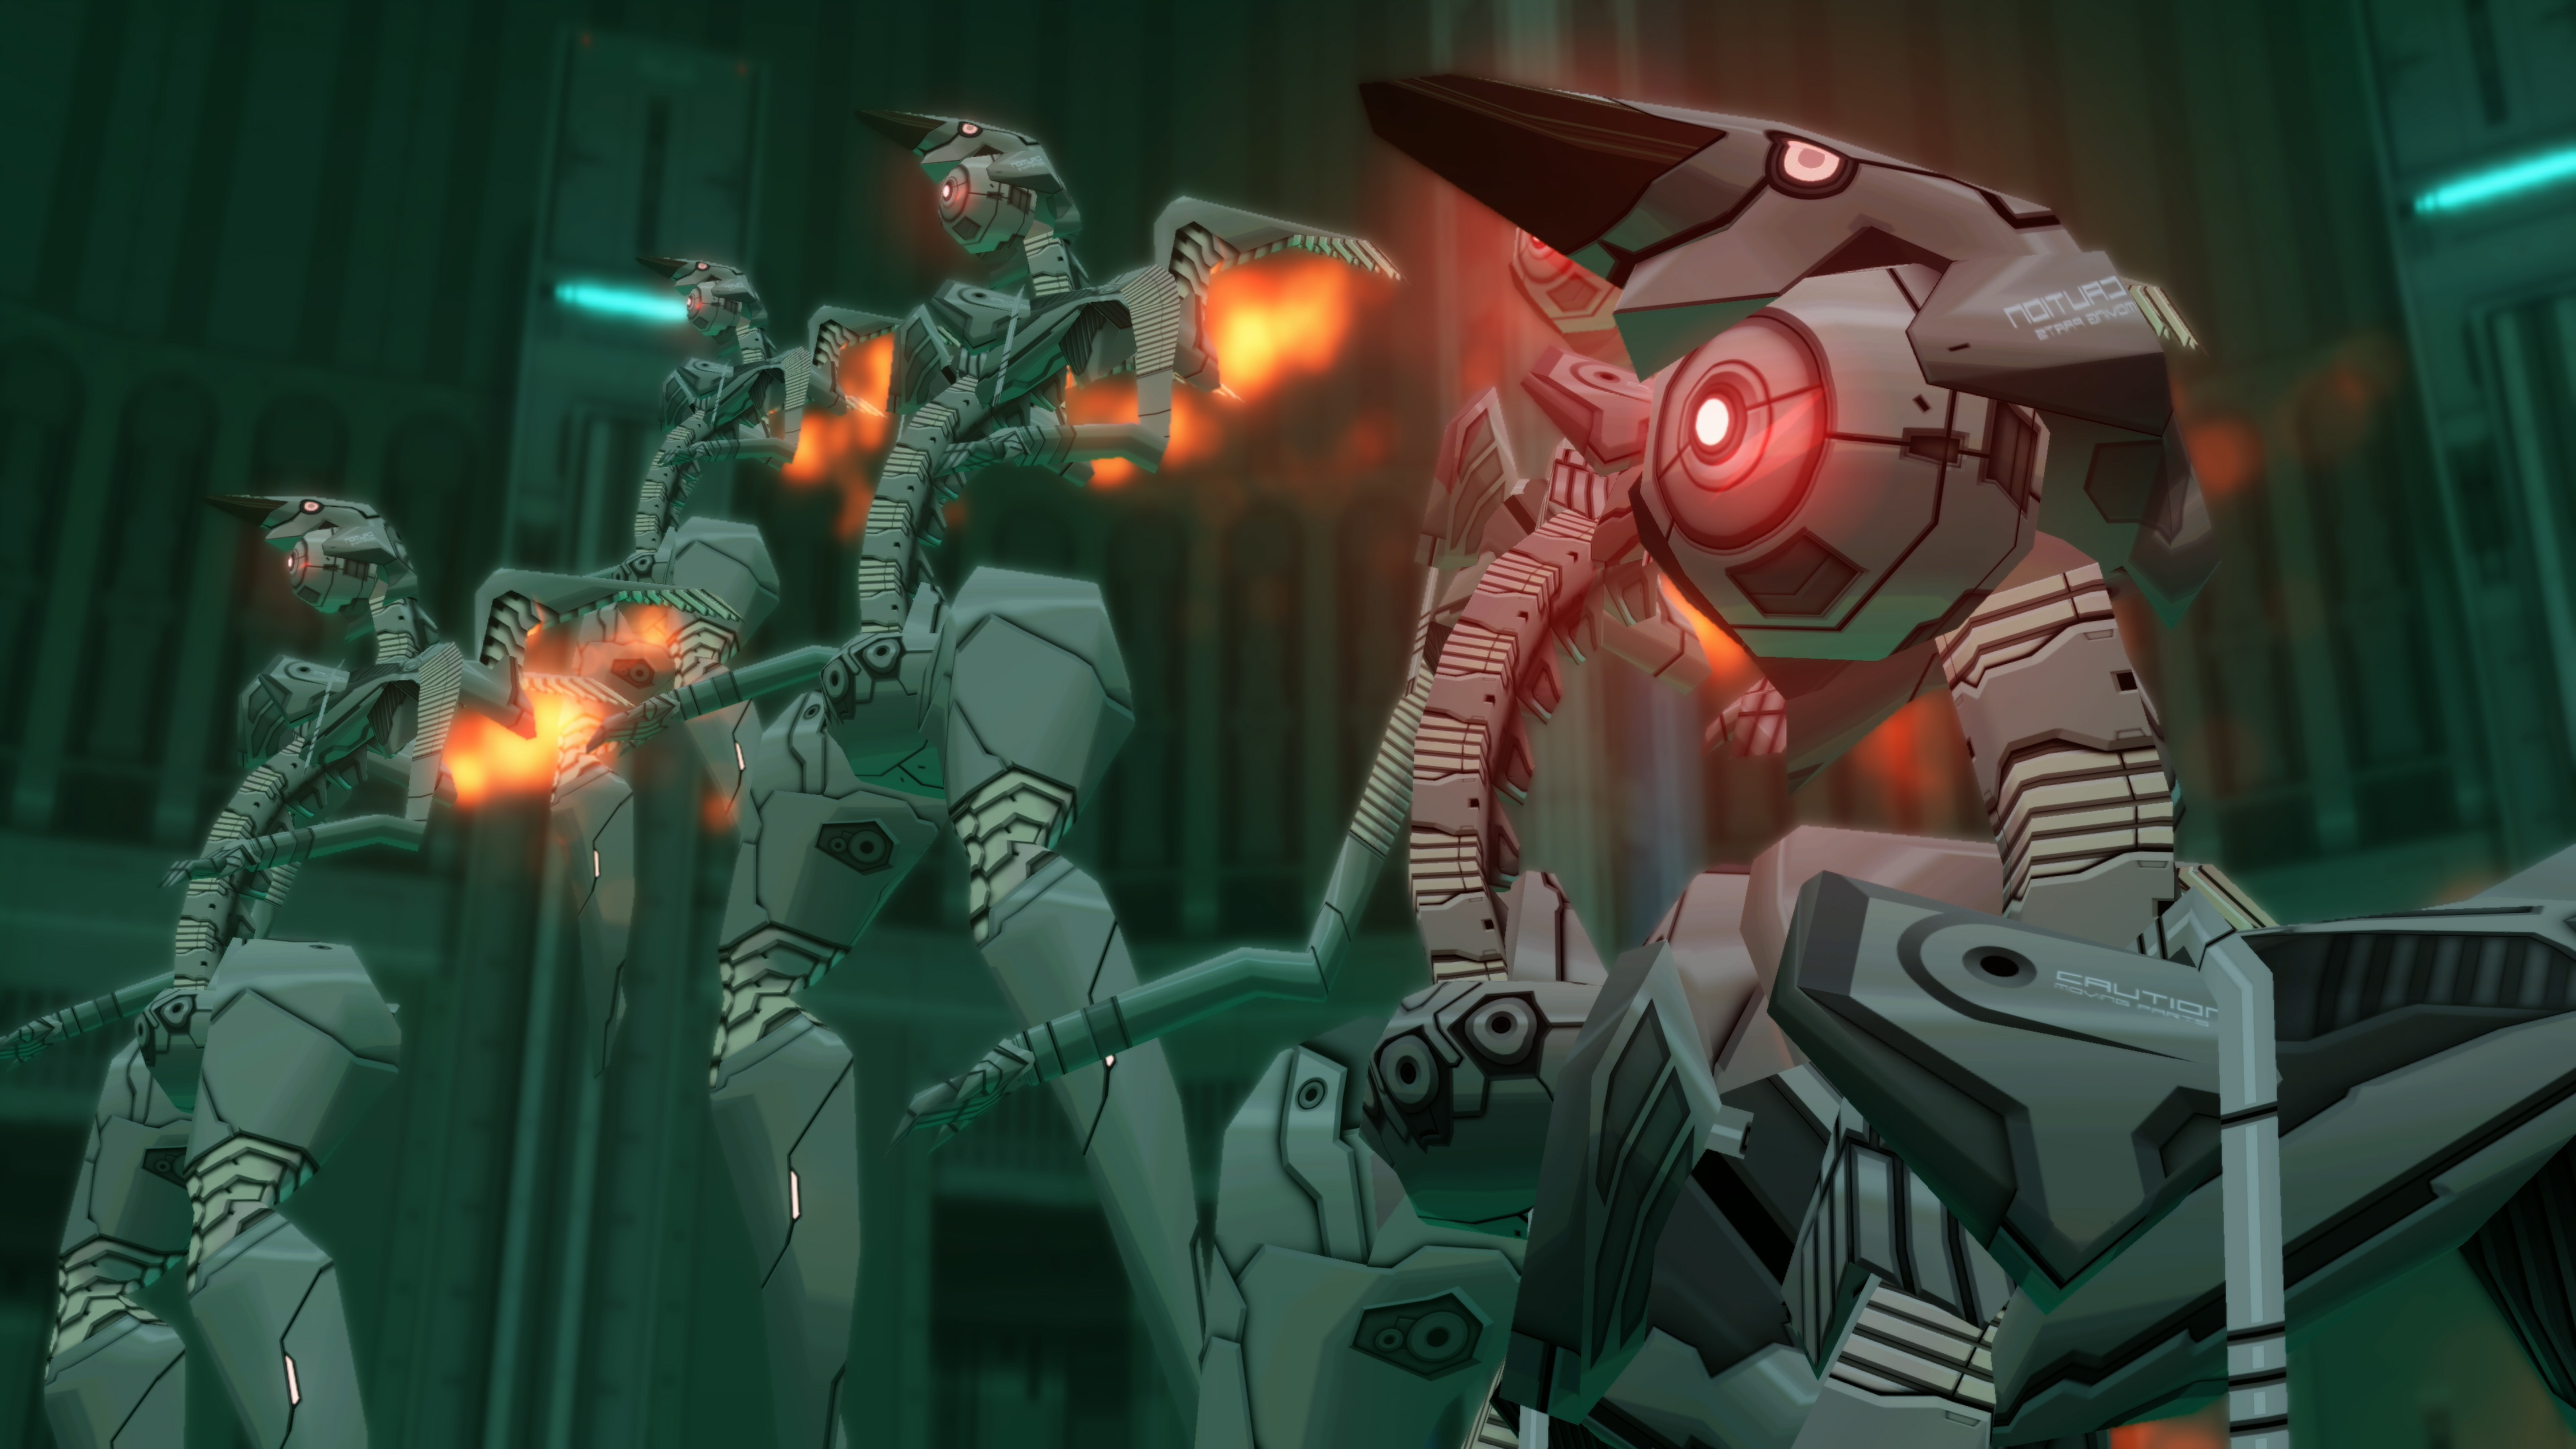 Zone Of The Enders 2nd Runner Mars Will Release In September Switch 3 Launch Edition Bonus English Us Games As You Can See From Press Those Who Pre Order Game Playstation Store Receive A Theme And Avatars